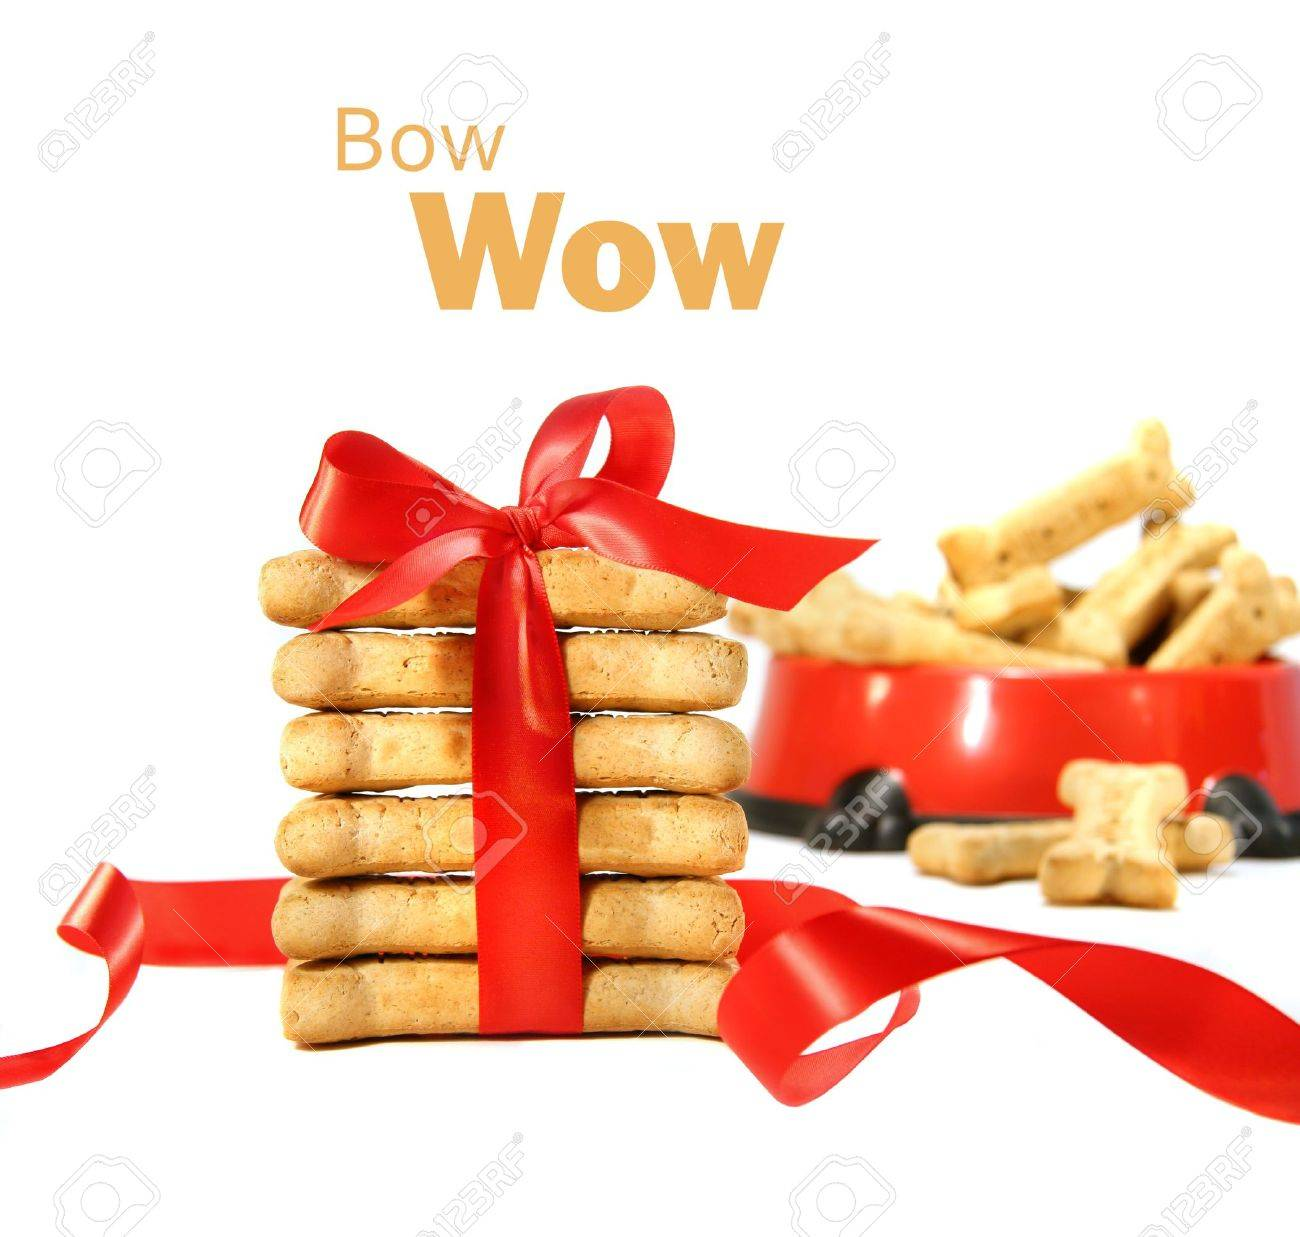 Dog biscuits wrapped with red bow on white background Stock Photo - 4006492